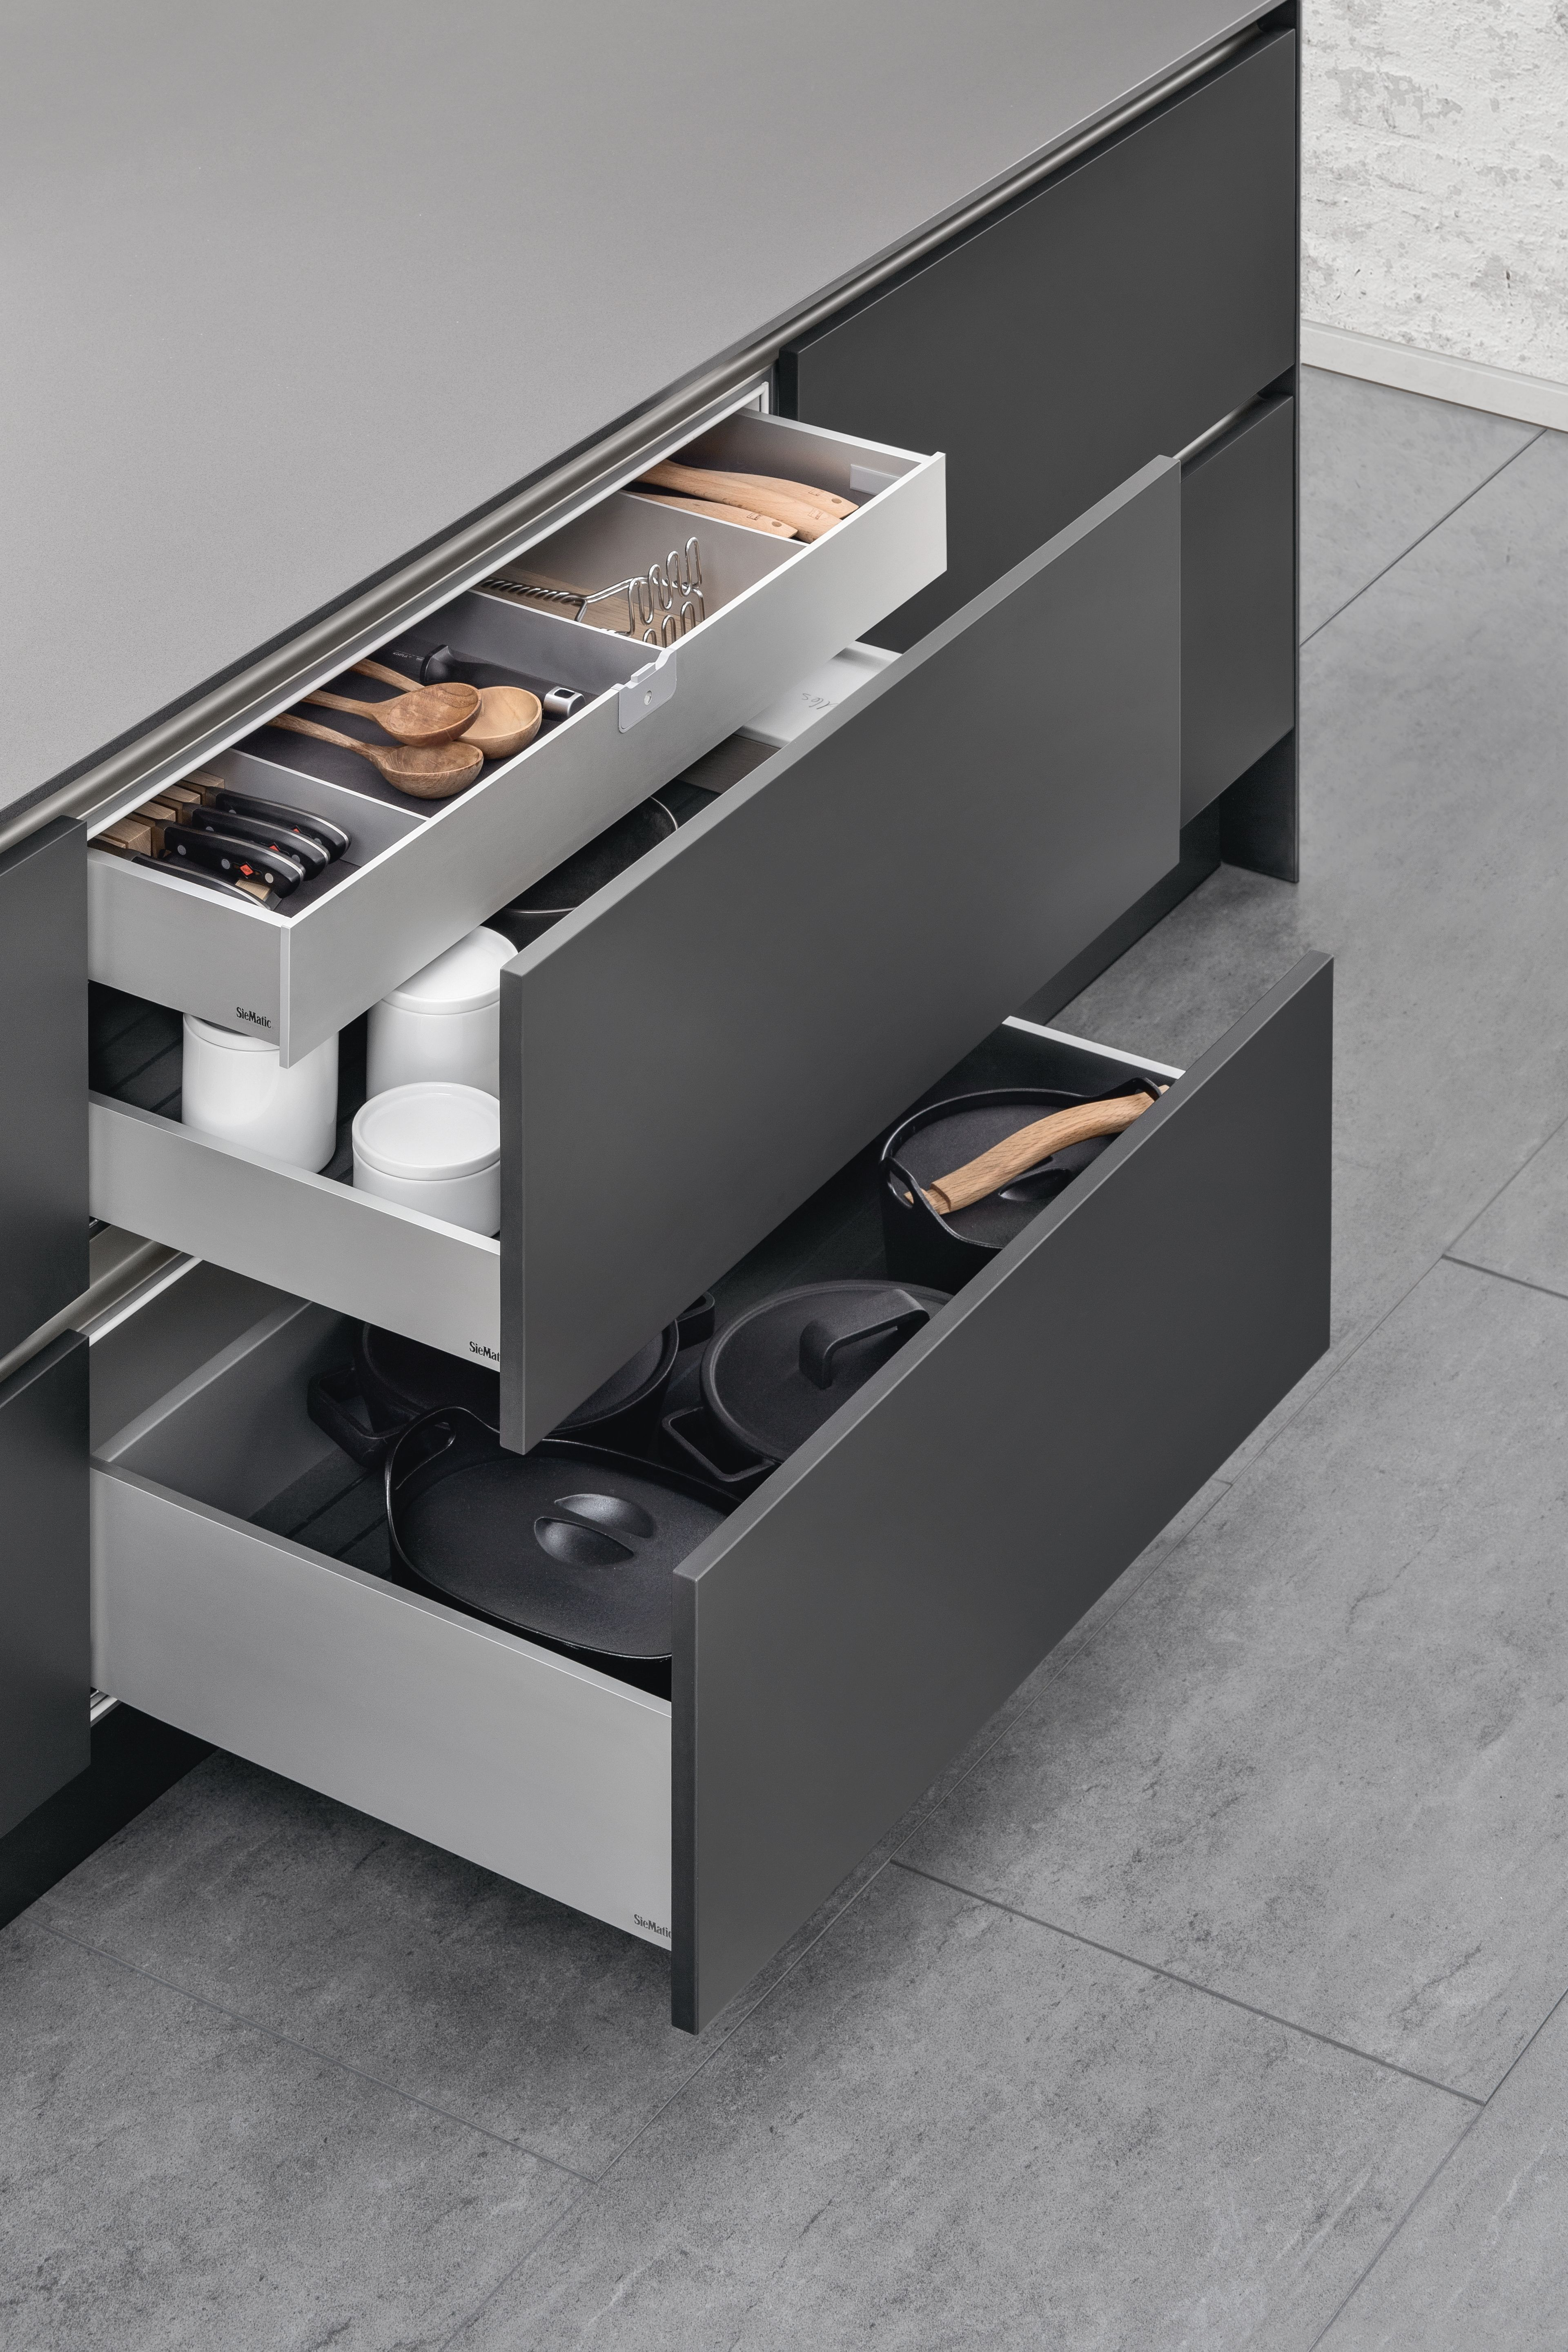 Best Siematic Inside For Drawers And Pull Outs The Internal 400 x 300